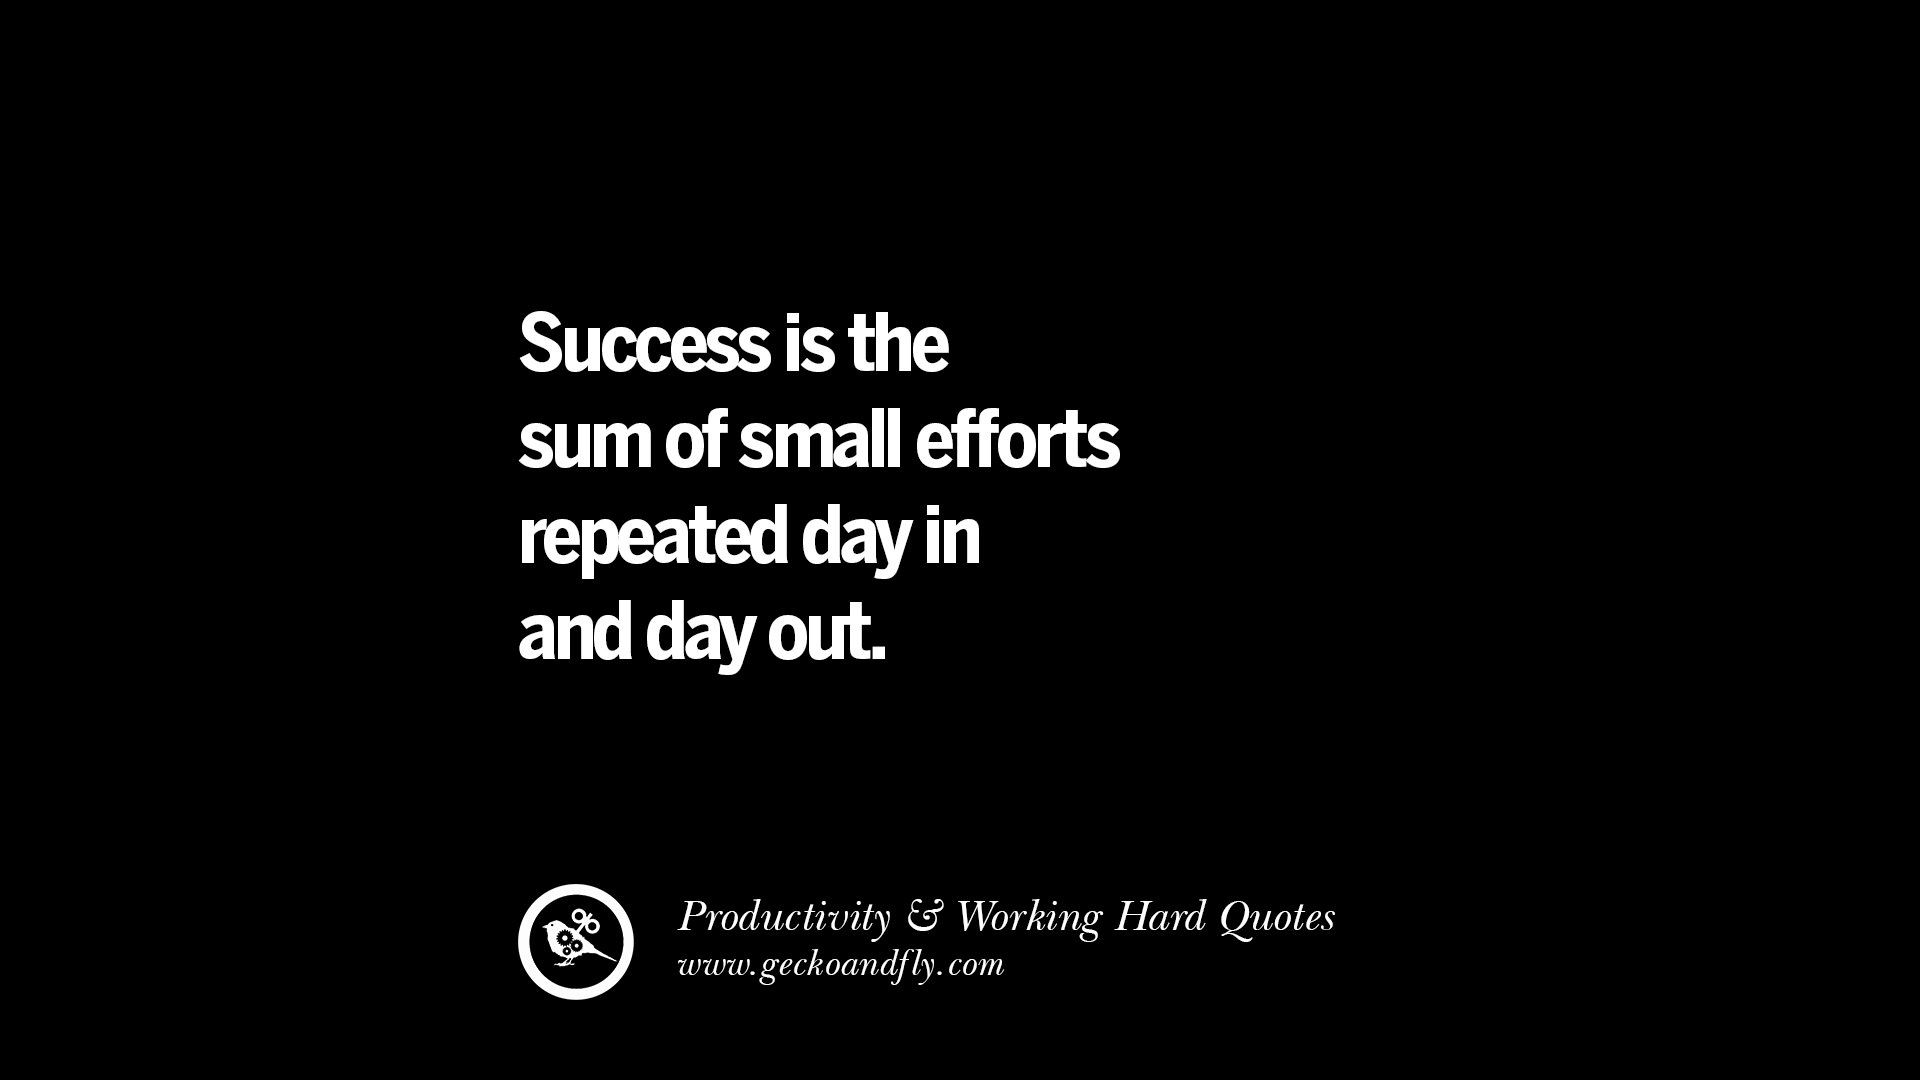 Work Quote Of The Day 30 Uplifting Quotes On Increasing Productivity And Working Hard